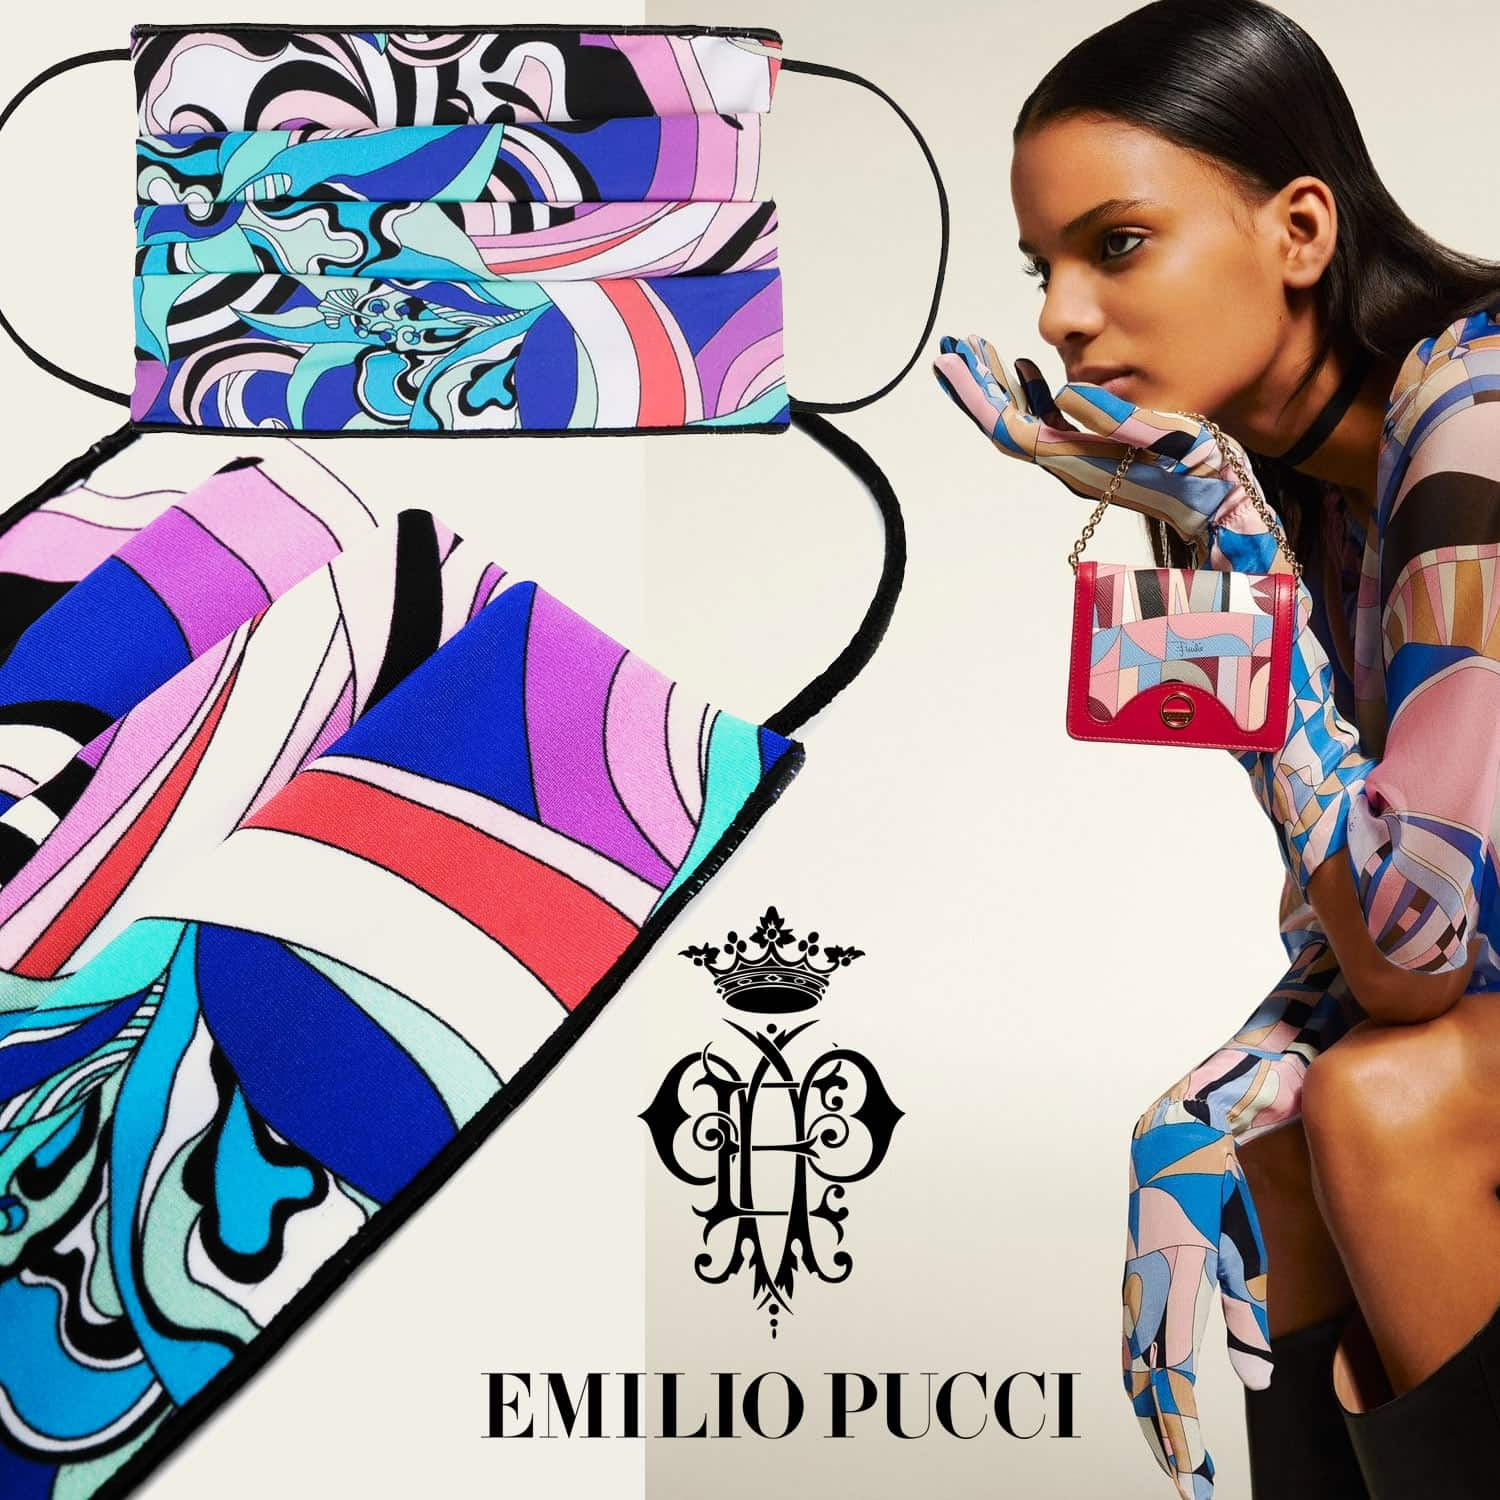 Emilio Pucci Protective Face Mask 2021 by RUNWAY MAGAZINE